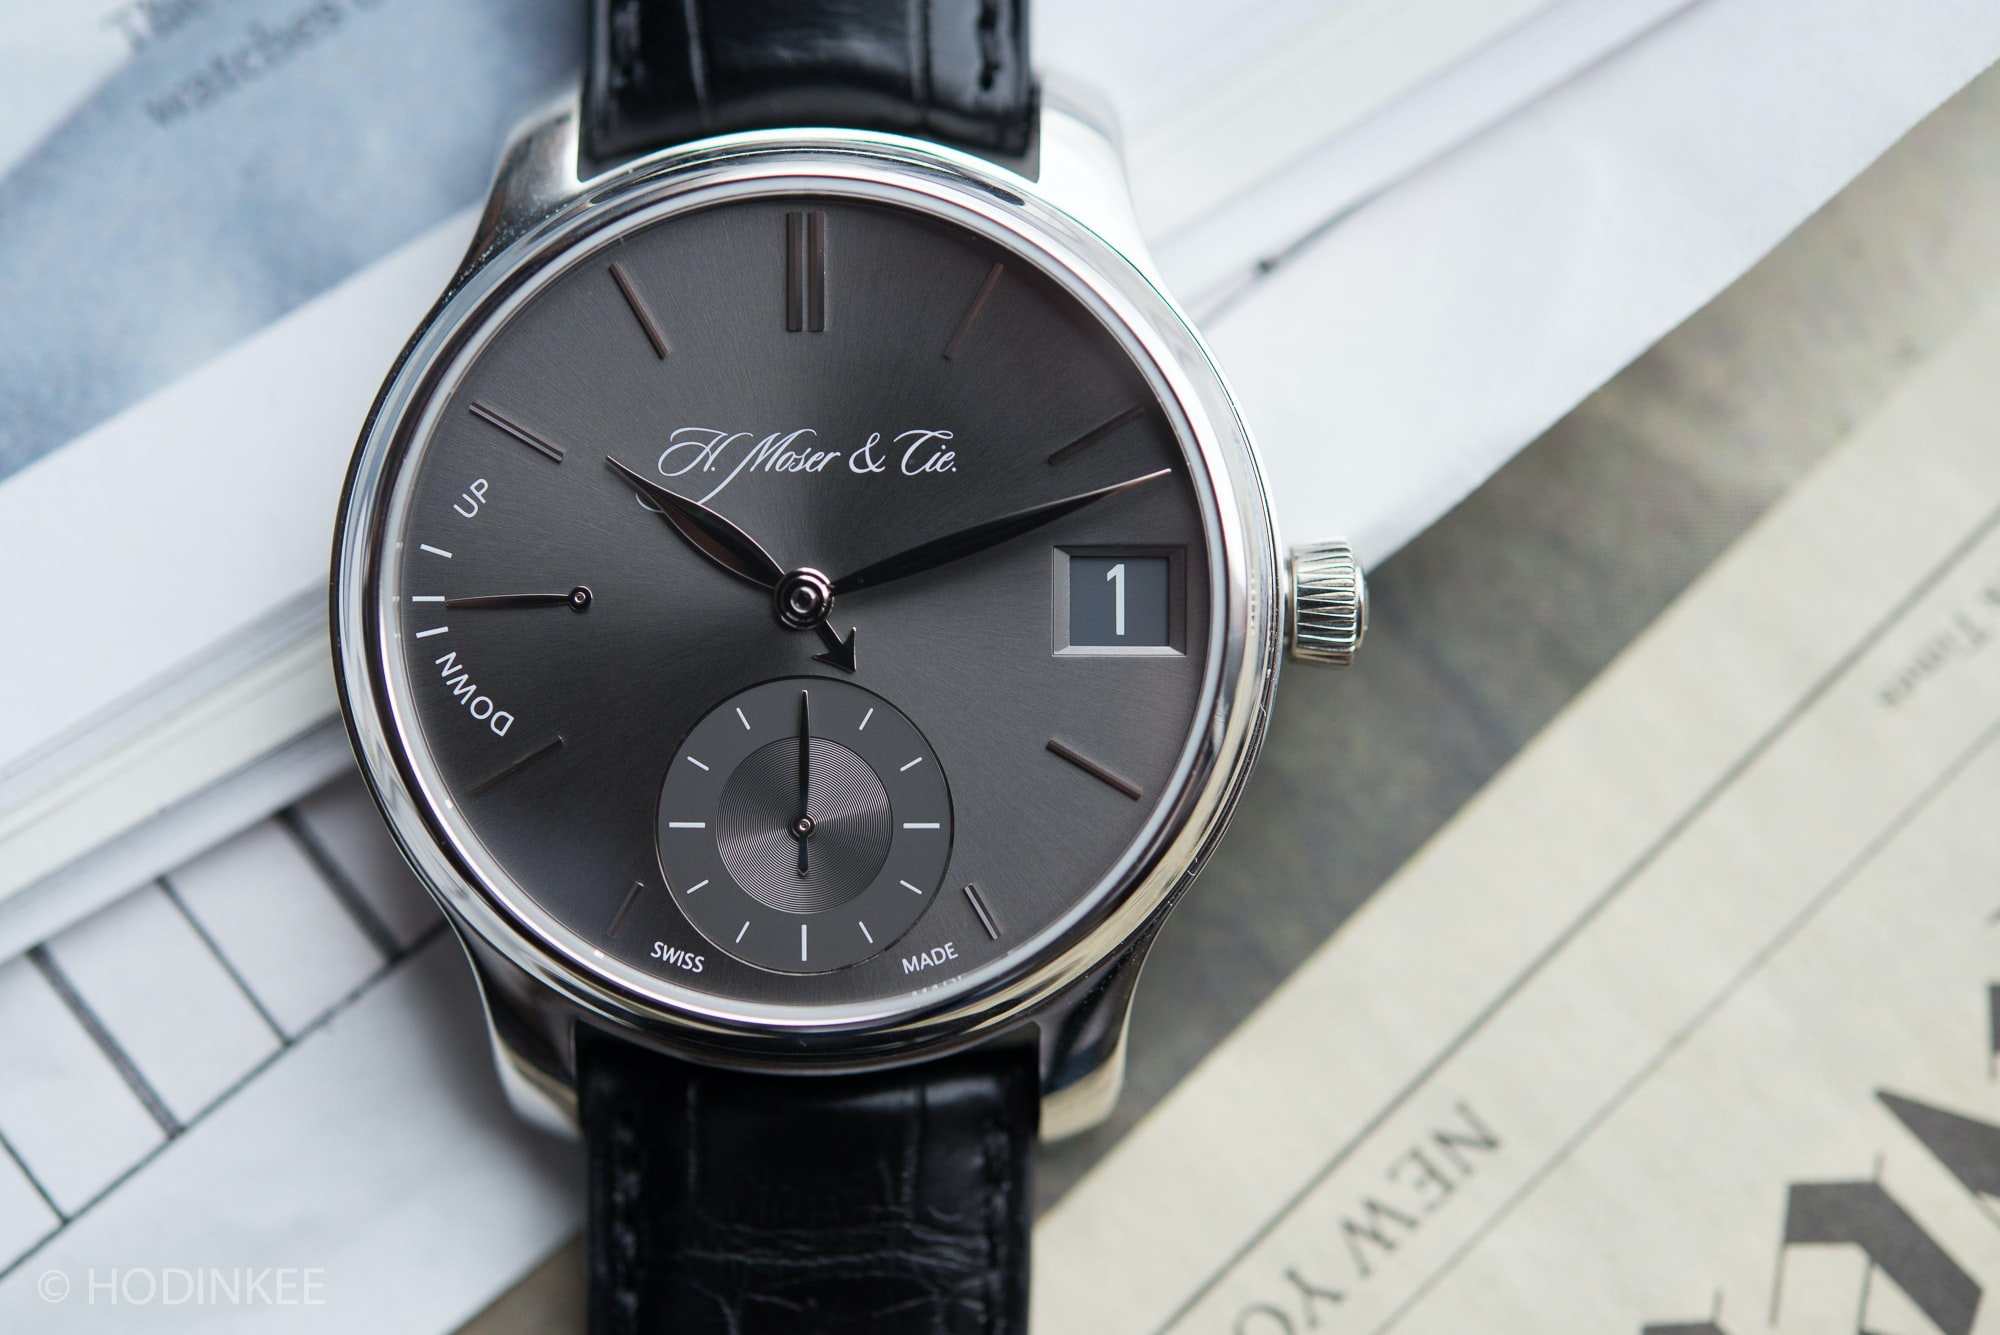 moser endeavor perpetual calendar Editors' Picks: Five Date Displays Done Well Editors' Picks: Five Date Displays Done Well HMoserEndeavourPerpetual 1